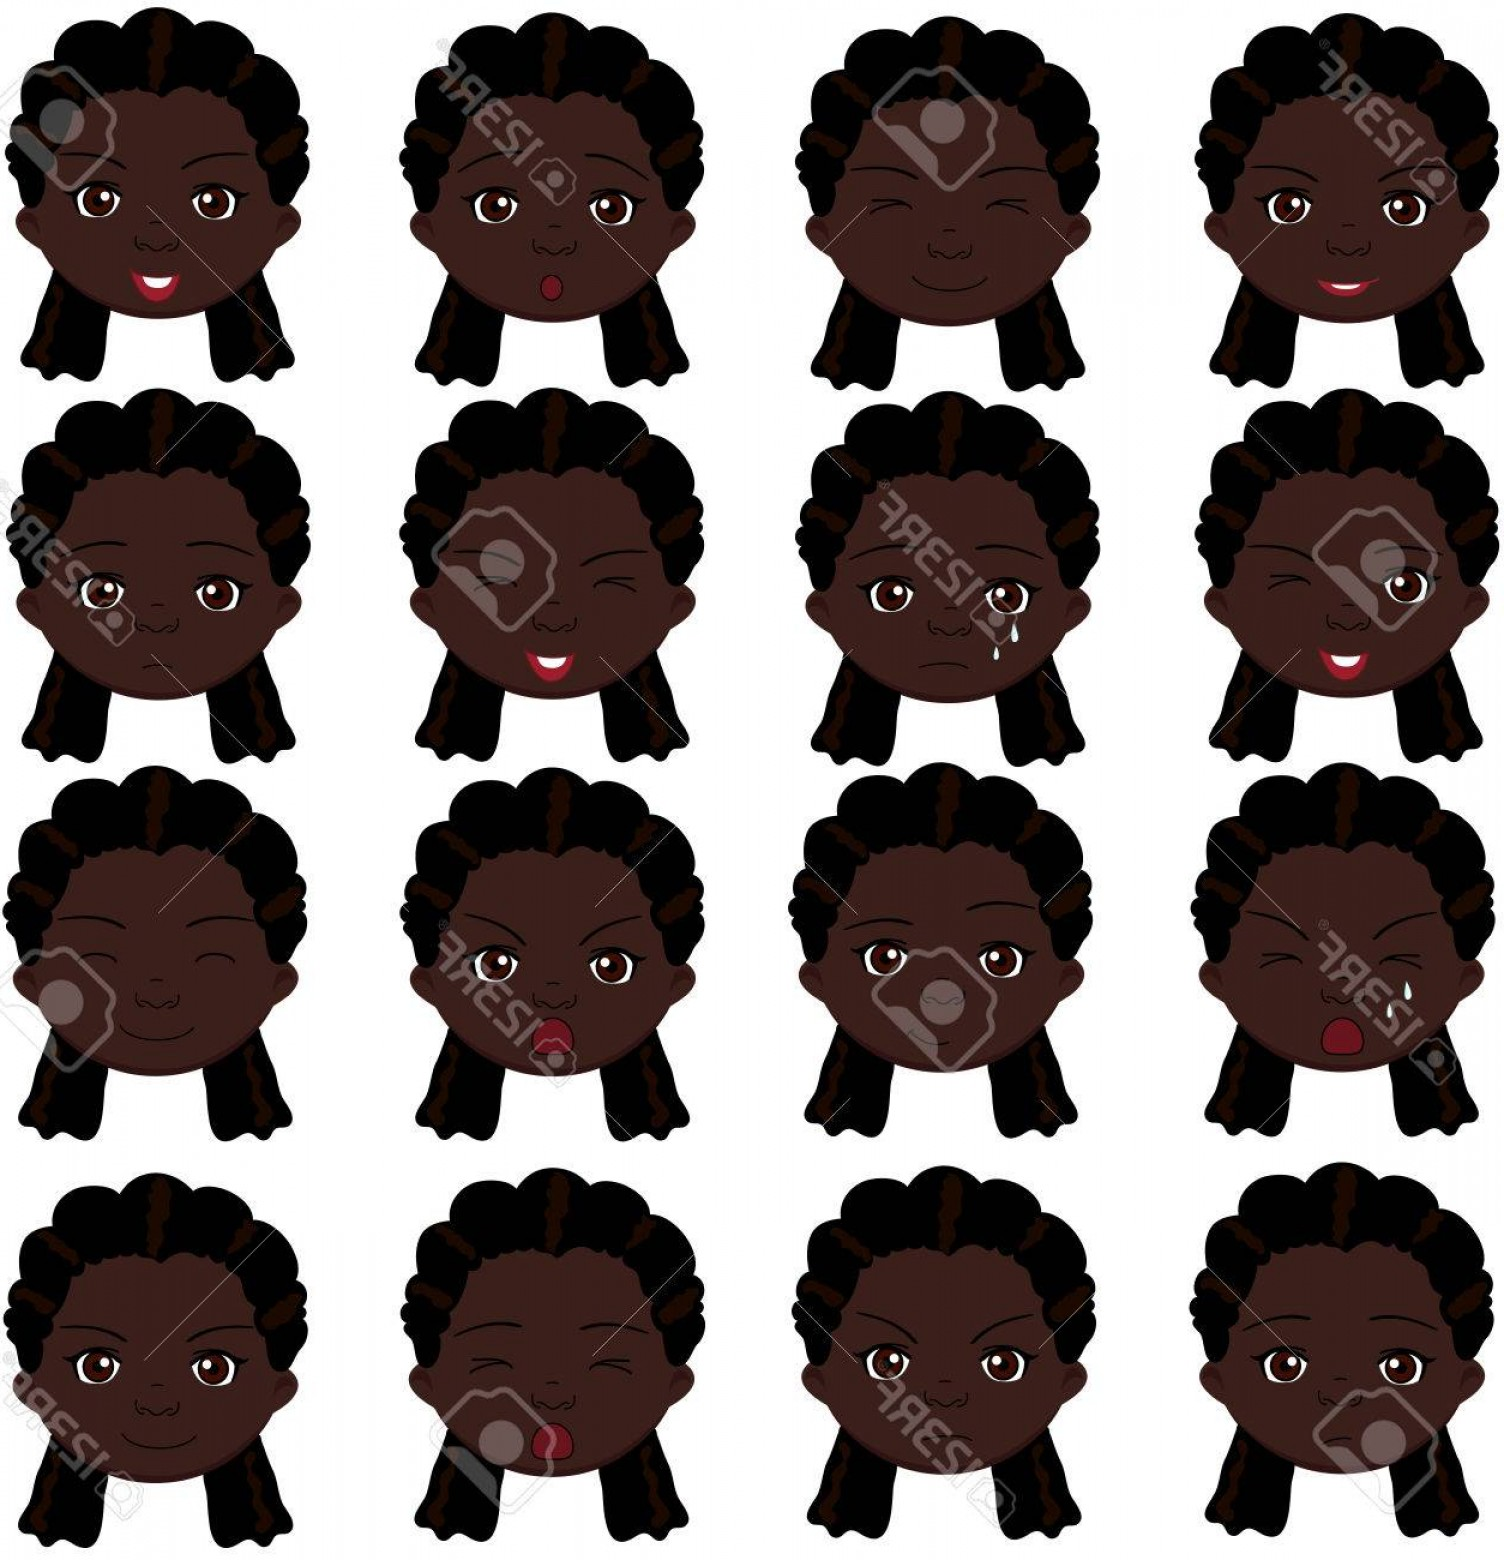 Fear The Beard Vector: Photostock Vector Afro Girl Emotions Joy Surprise Fear Sadness Sorrow Crying Laughing Cunning Wink Vector Cartoon Illu